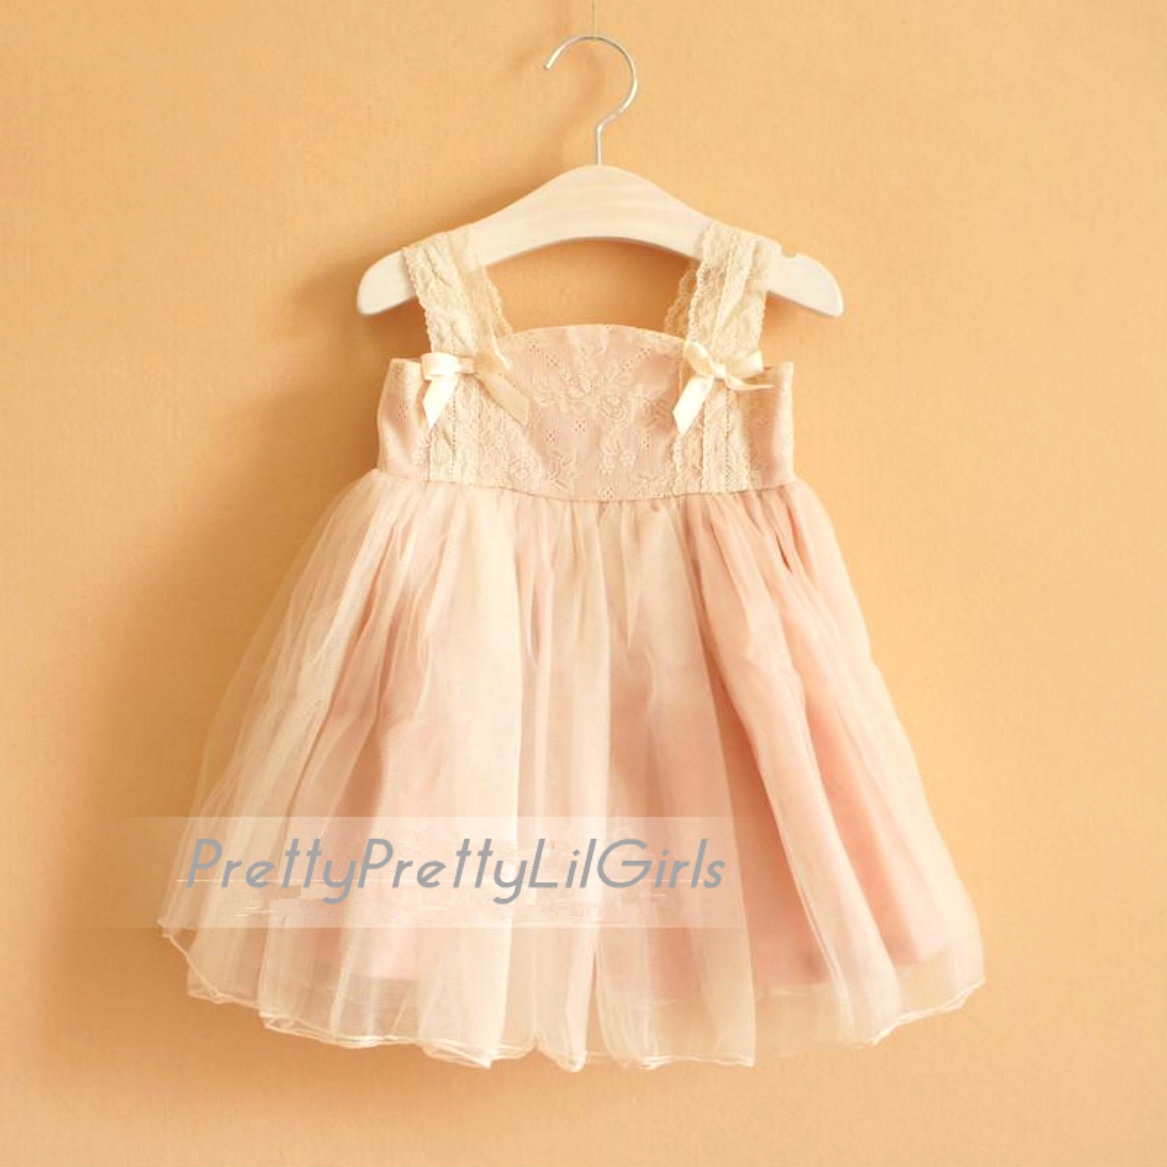 Little Girls Dress Toddler Dress Girls Lace Dress Baby Girls Dress Girls Summer Dress From Pretty Pretty Lil Girls